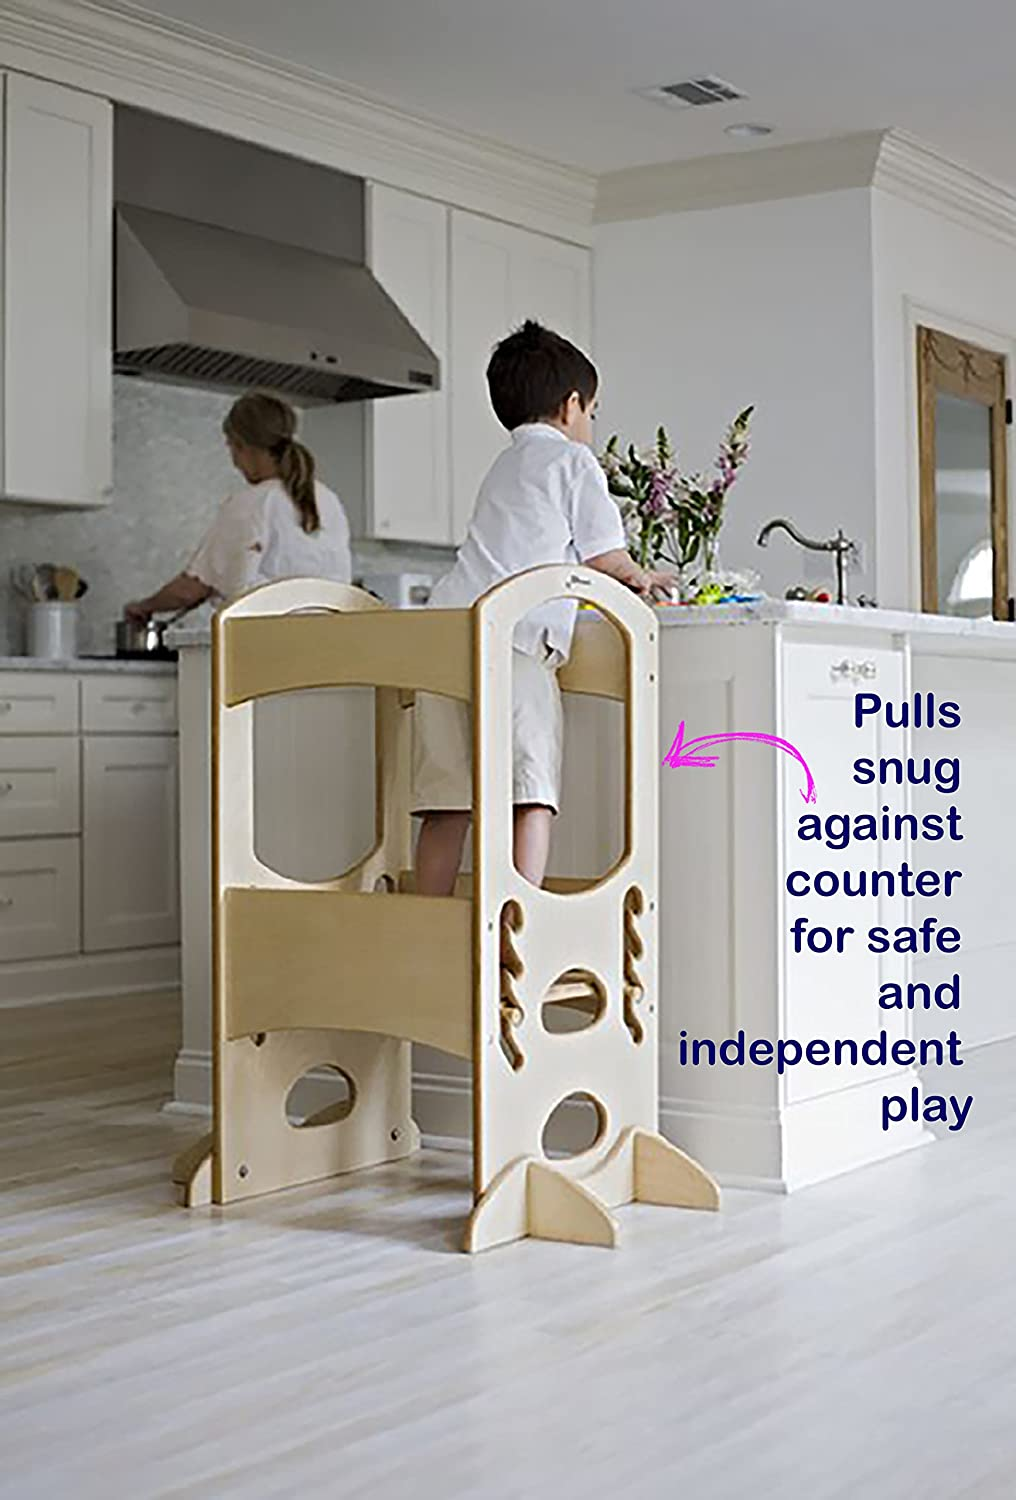 Brown Kitchen Helper Stool /& Desk for Toddlers Safe Convertible Montessori Tower by ComfyBumpy Easy Folding Design Turns Learning Step for Kitchen Counter Into Table /& Chair Set for Little Kids